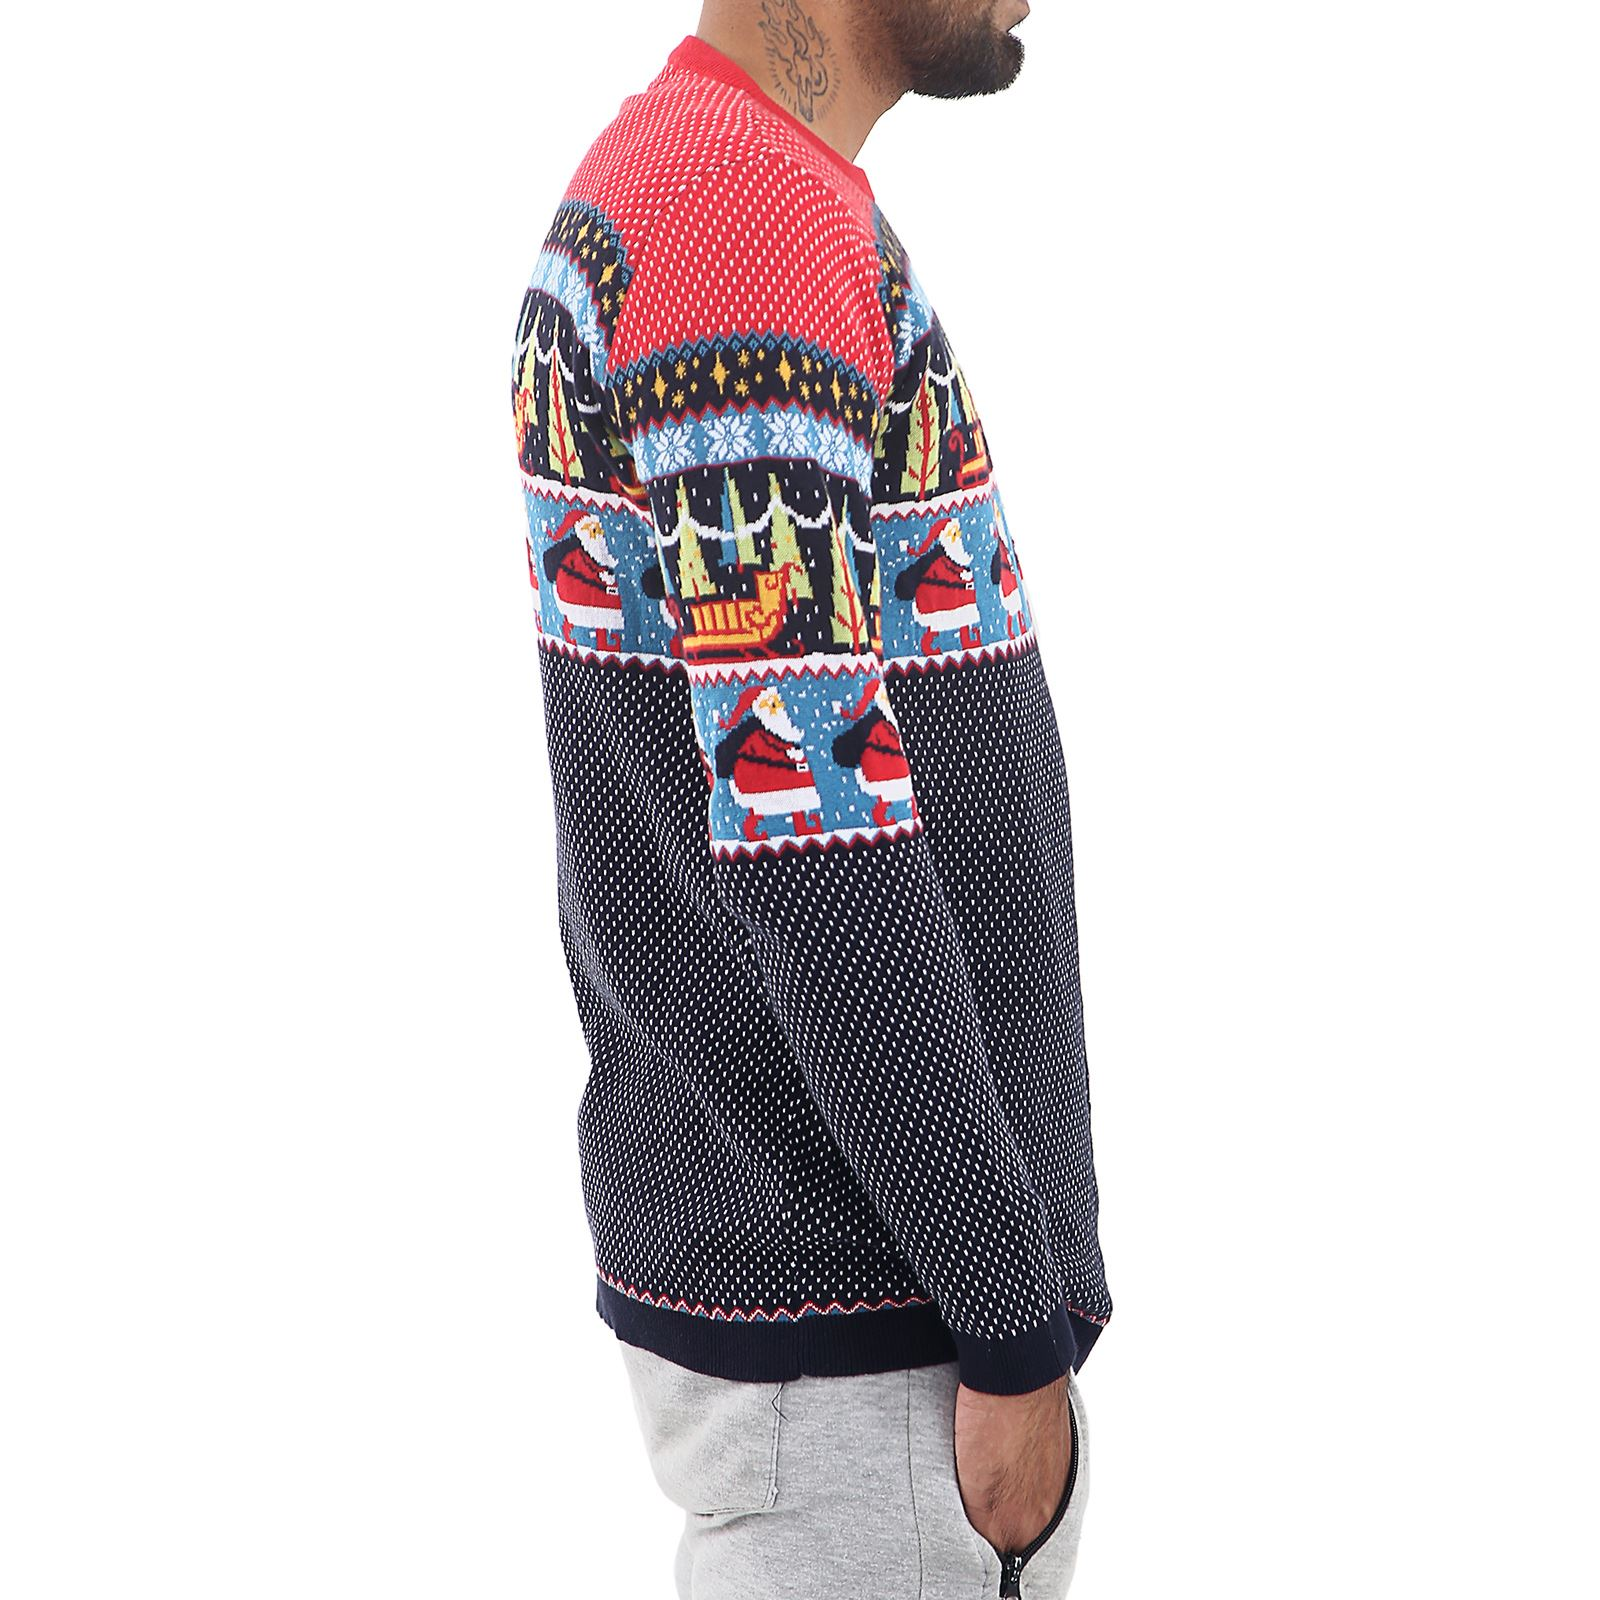 Mens-Ladies-Ex-Store-Matching-Christmas-Sweater-Jumper-Sweatshirt-Xmas-His-Hers thumbnail 9